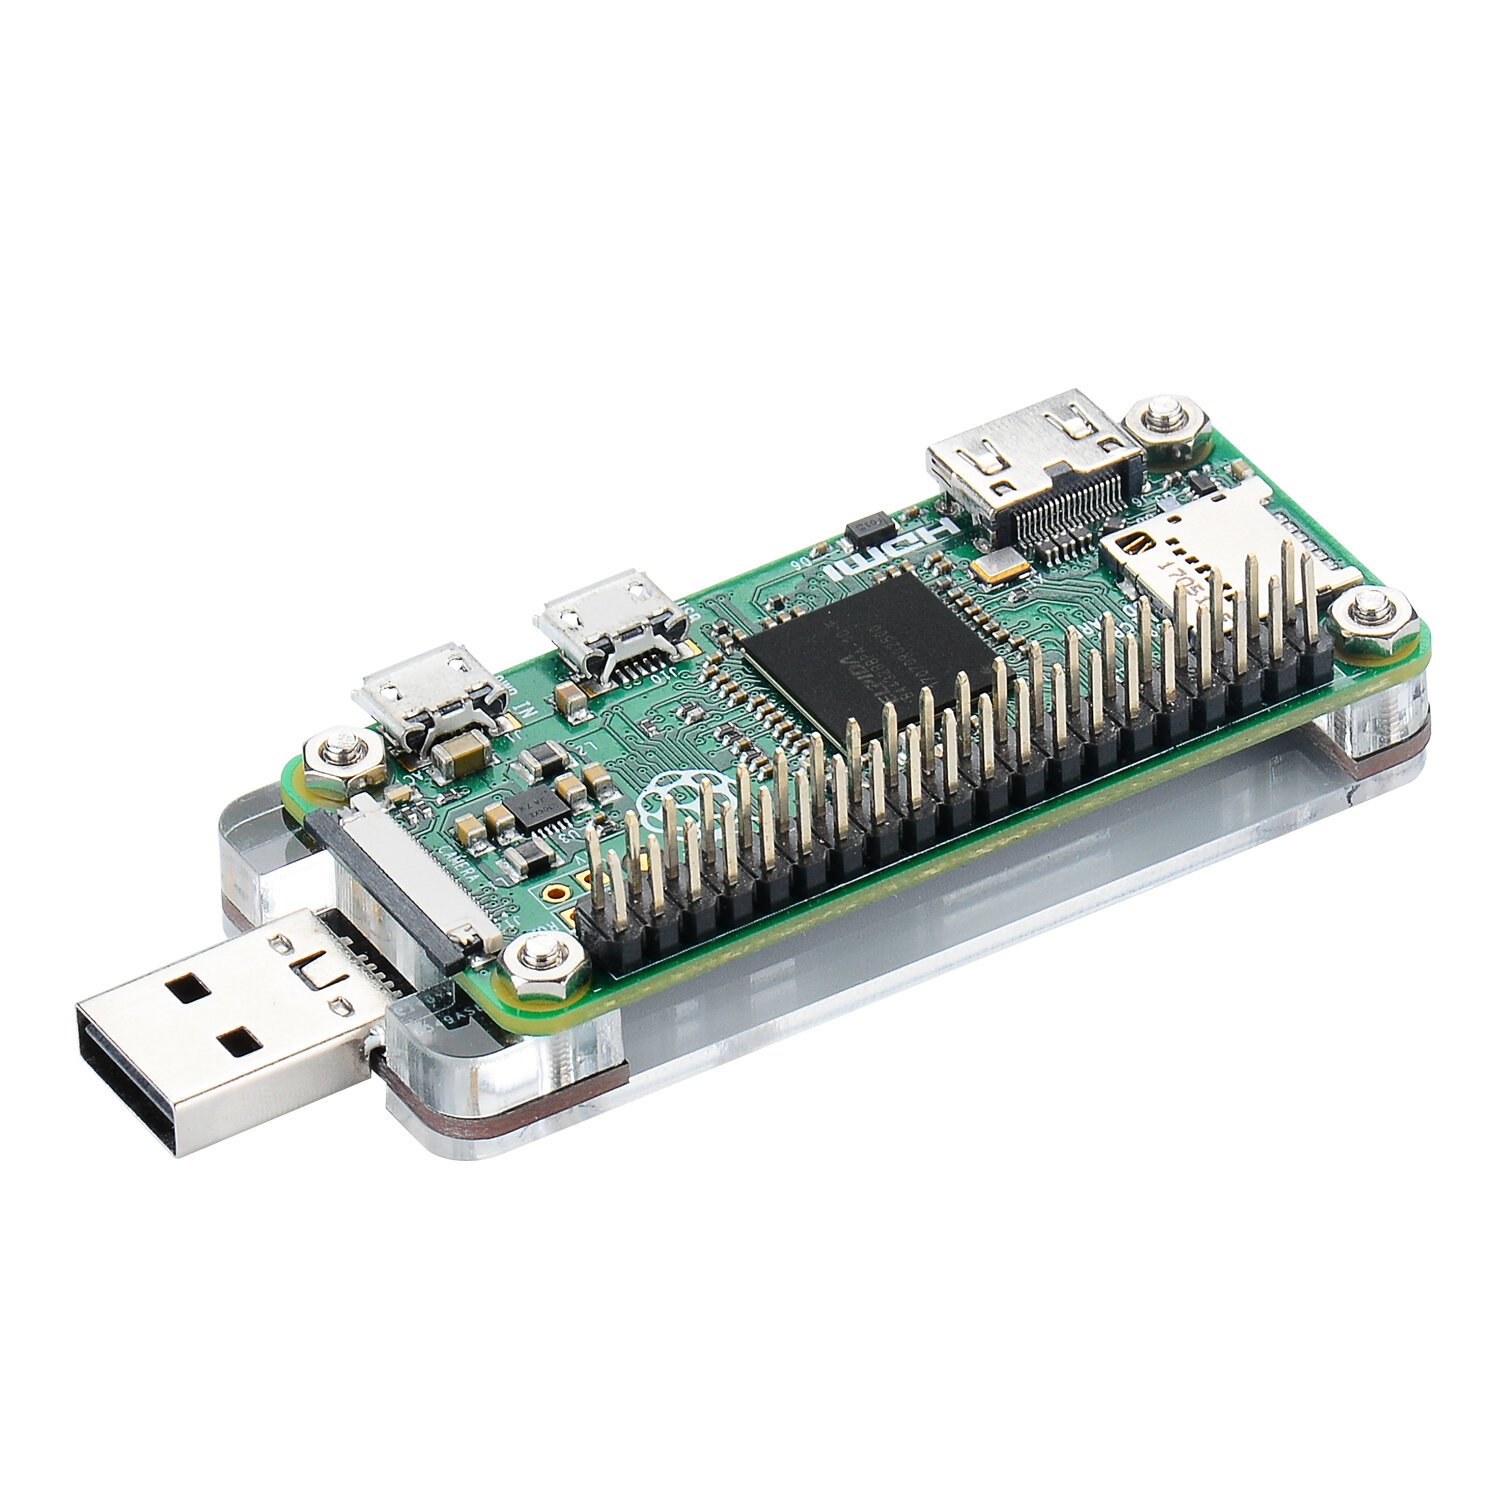 USB Dongle With Acrylic Shield for Raspberry Pi Zero / Zero W